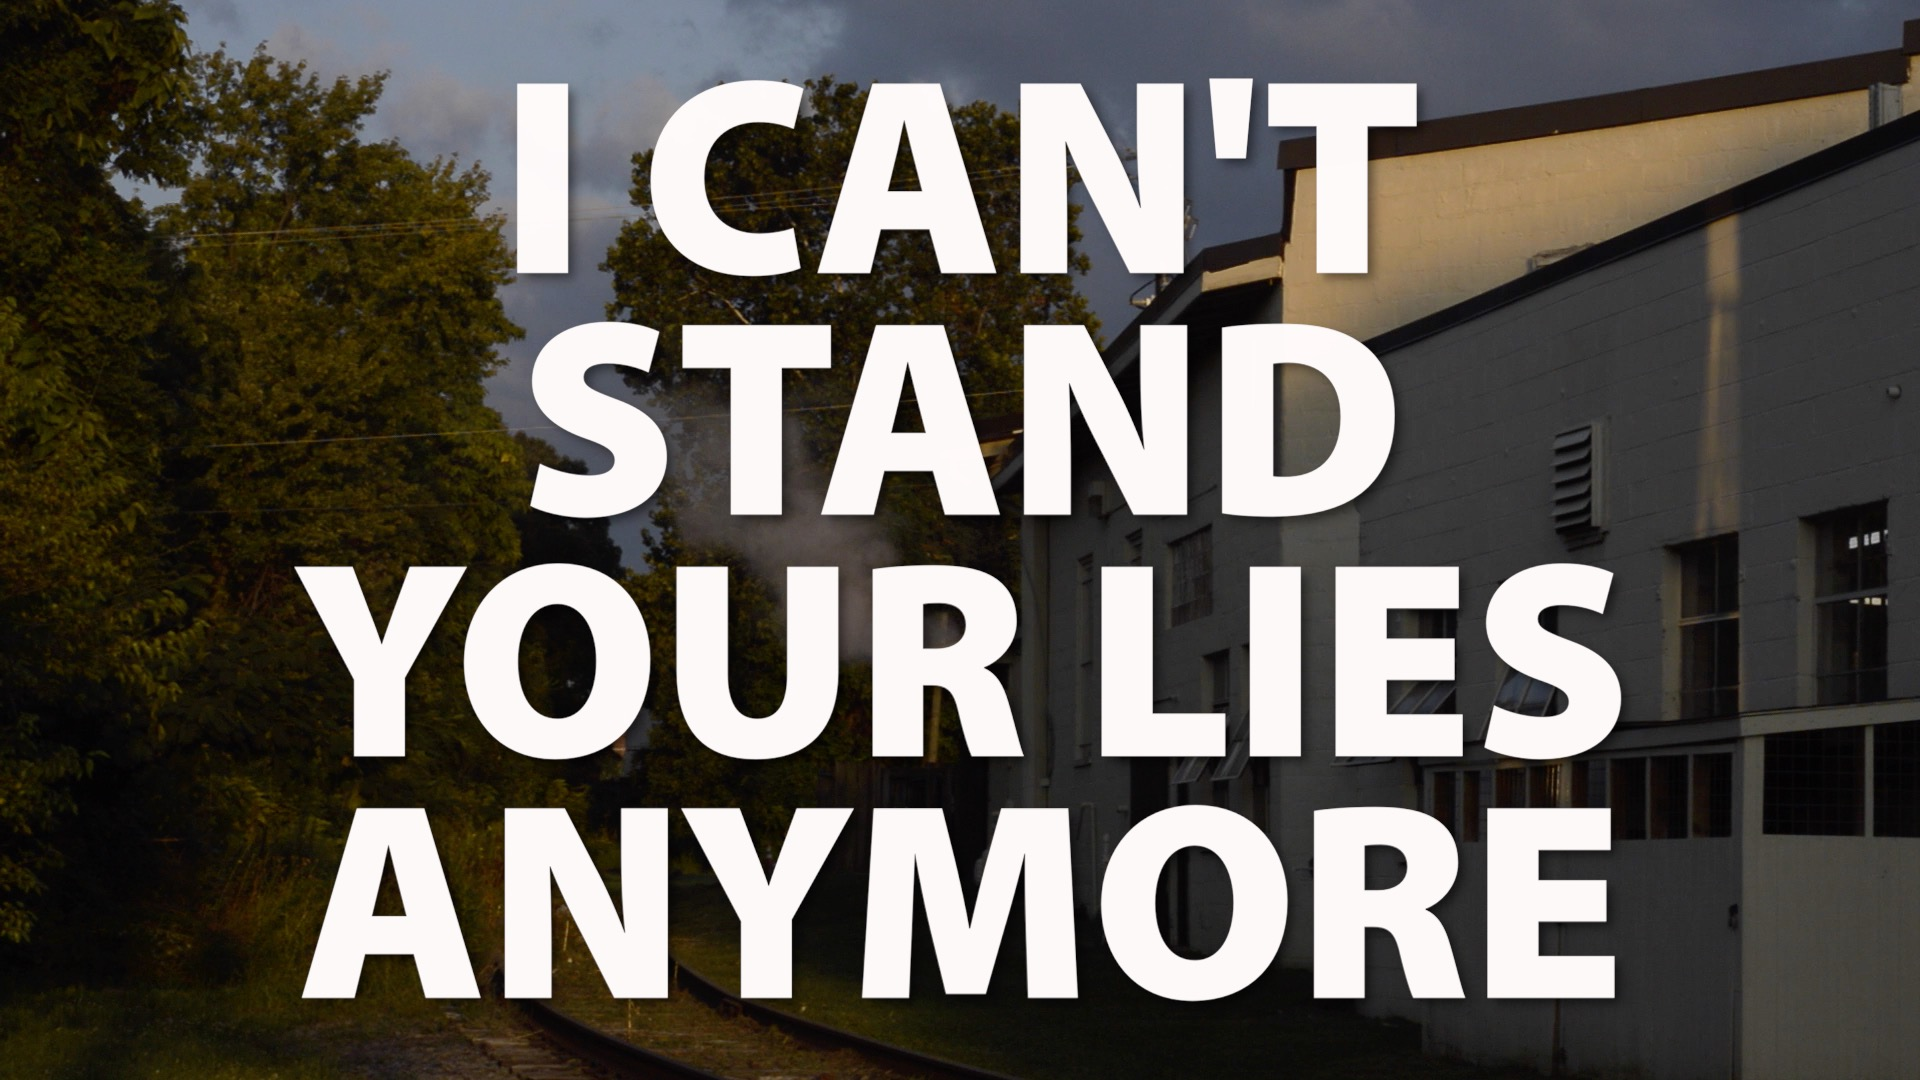 I Can't Stand Your Lies Anymore